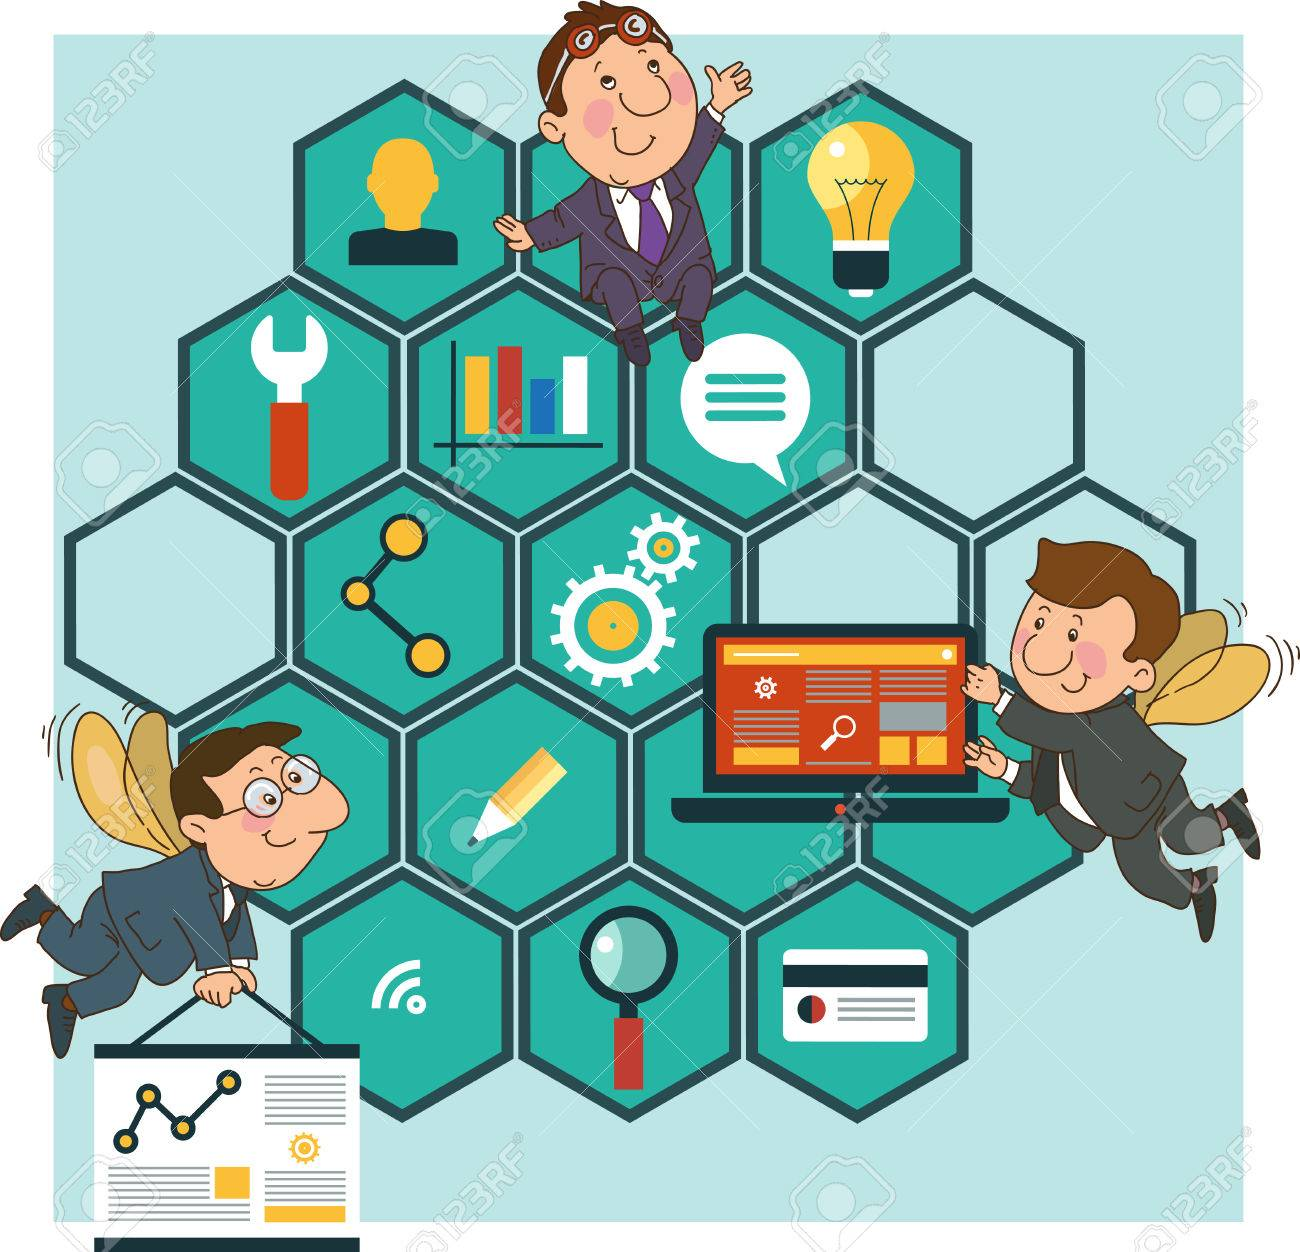 Hard Working people cartoon icons SEO optimization concept on the background of the honeycomb structure. - 46203079